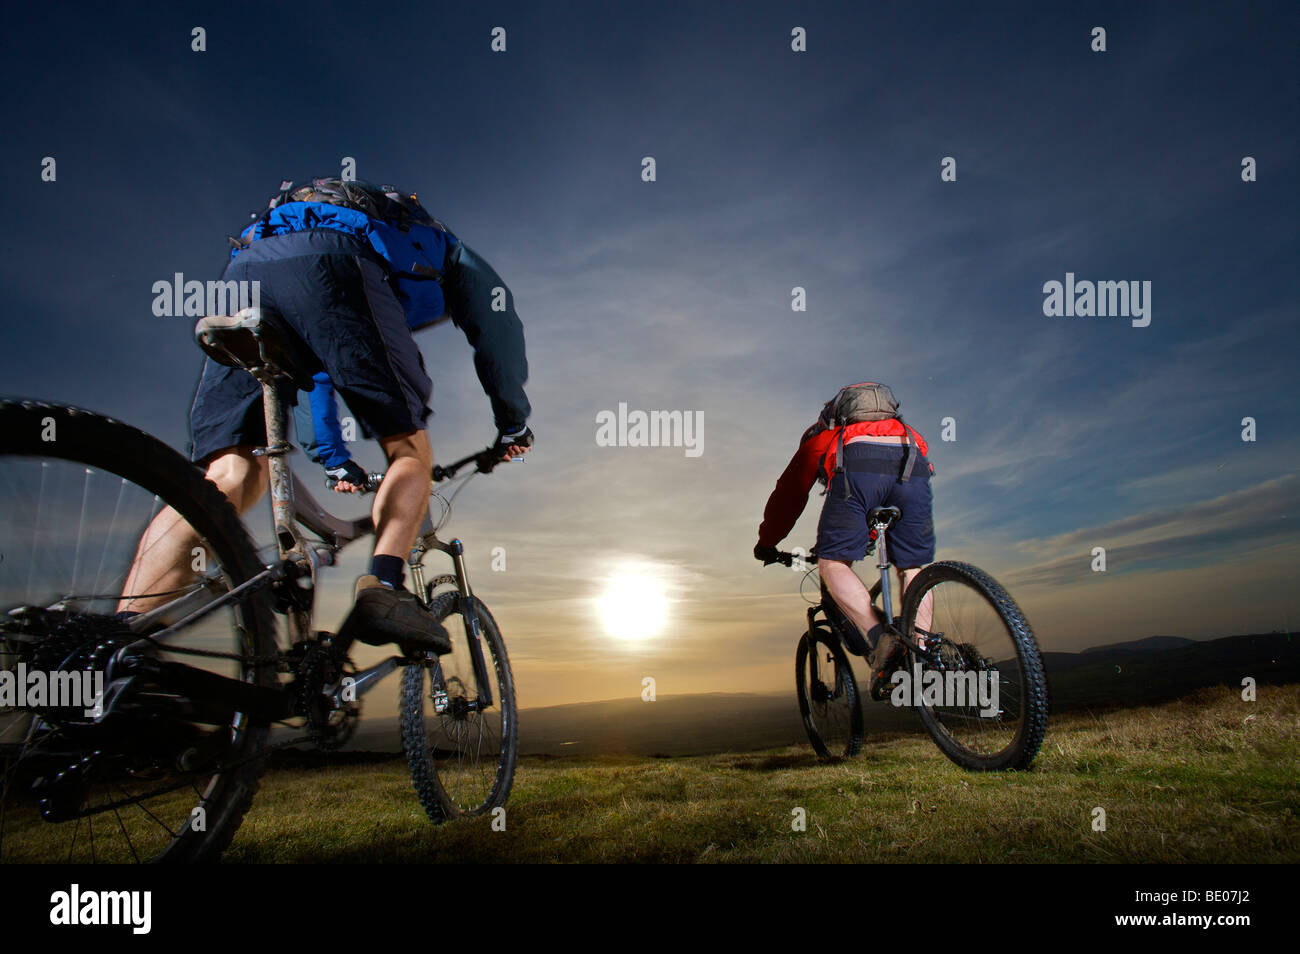 Two mountain bikers riding together. - Stock Image